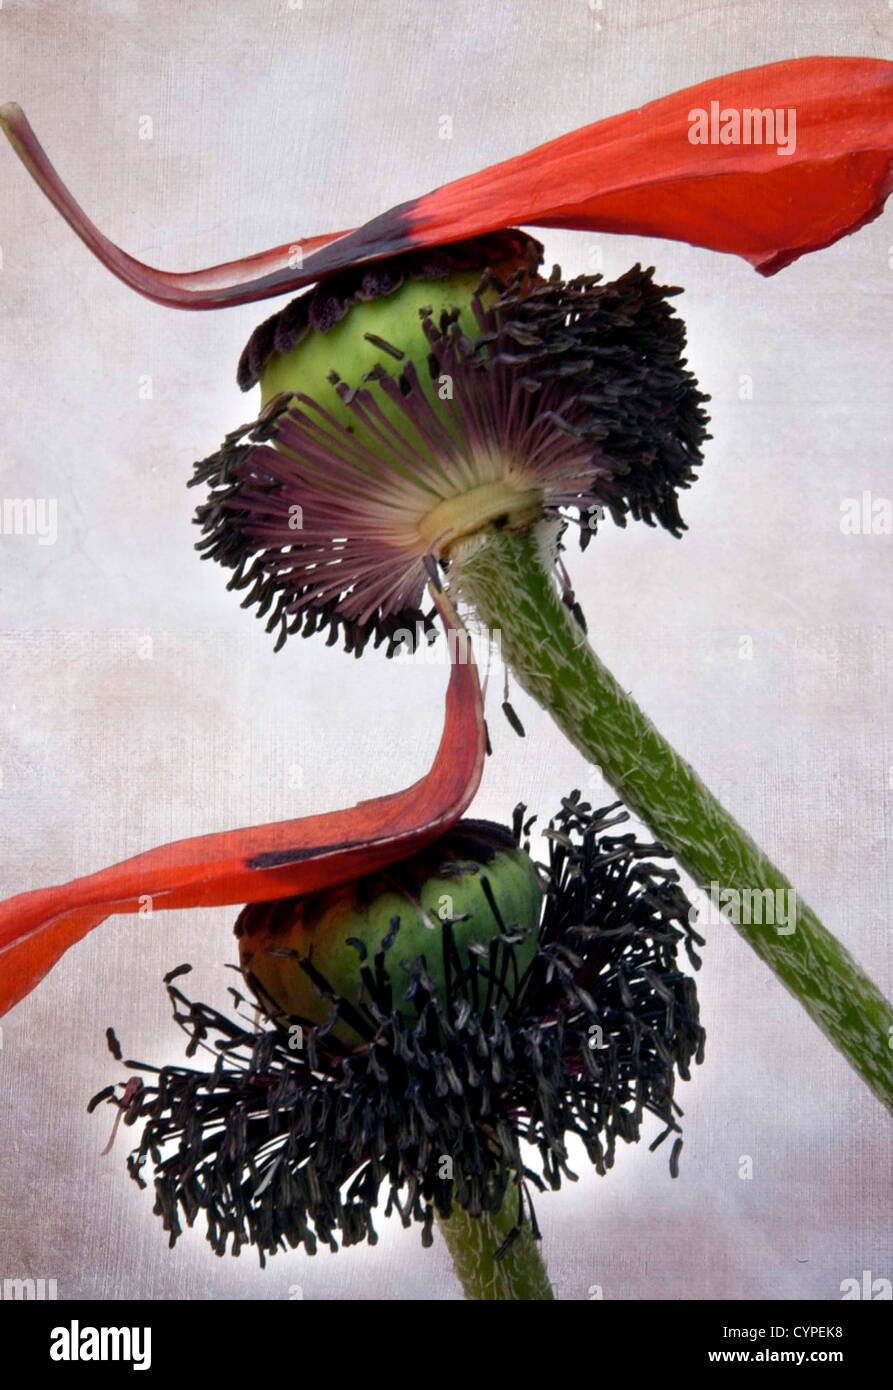 Dying flowers - Stock Image